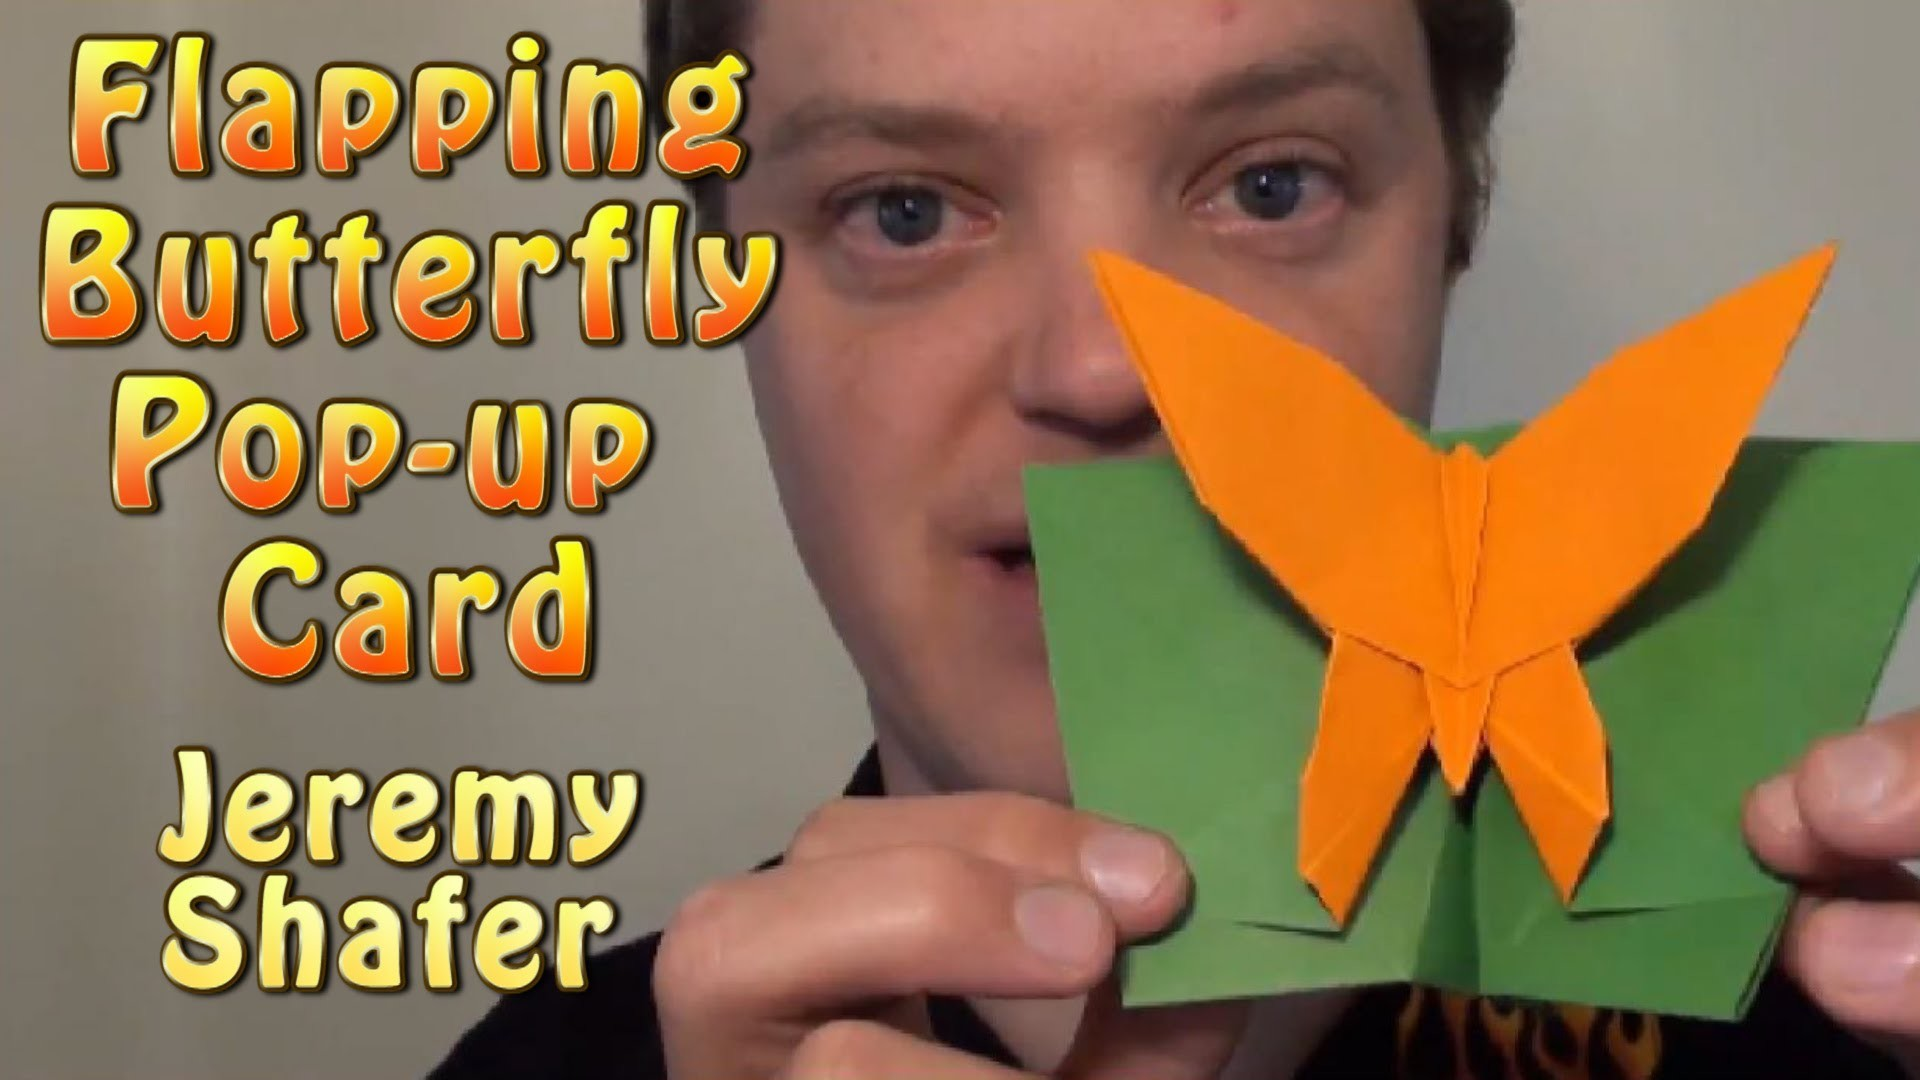 Flapping Butterfly Pop-up Card by Jeremy Shafer